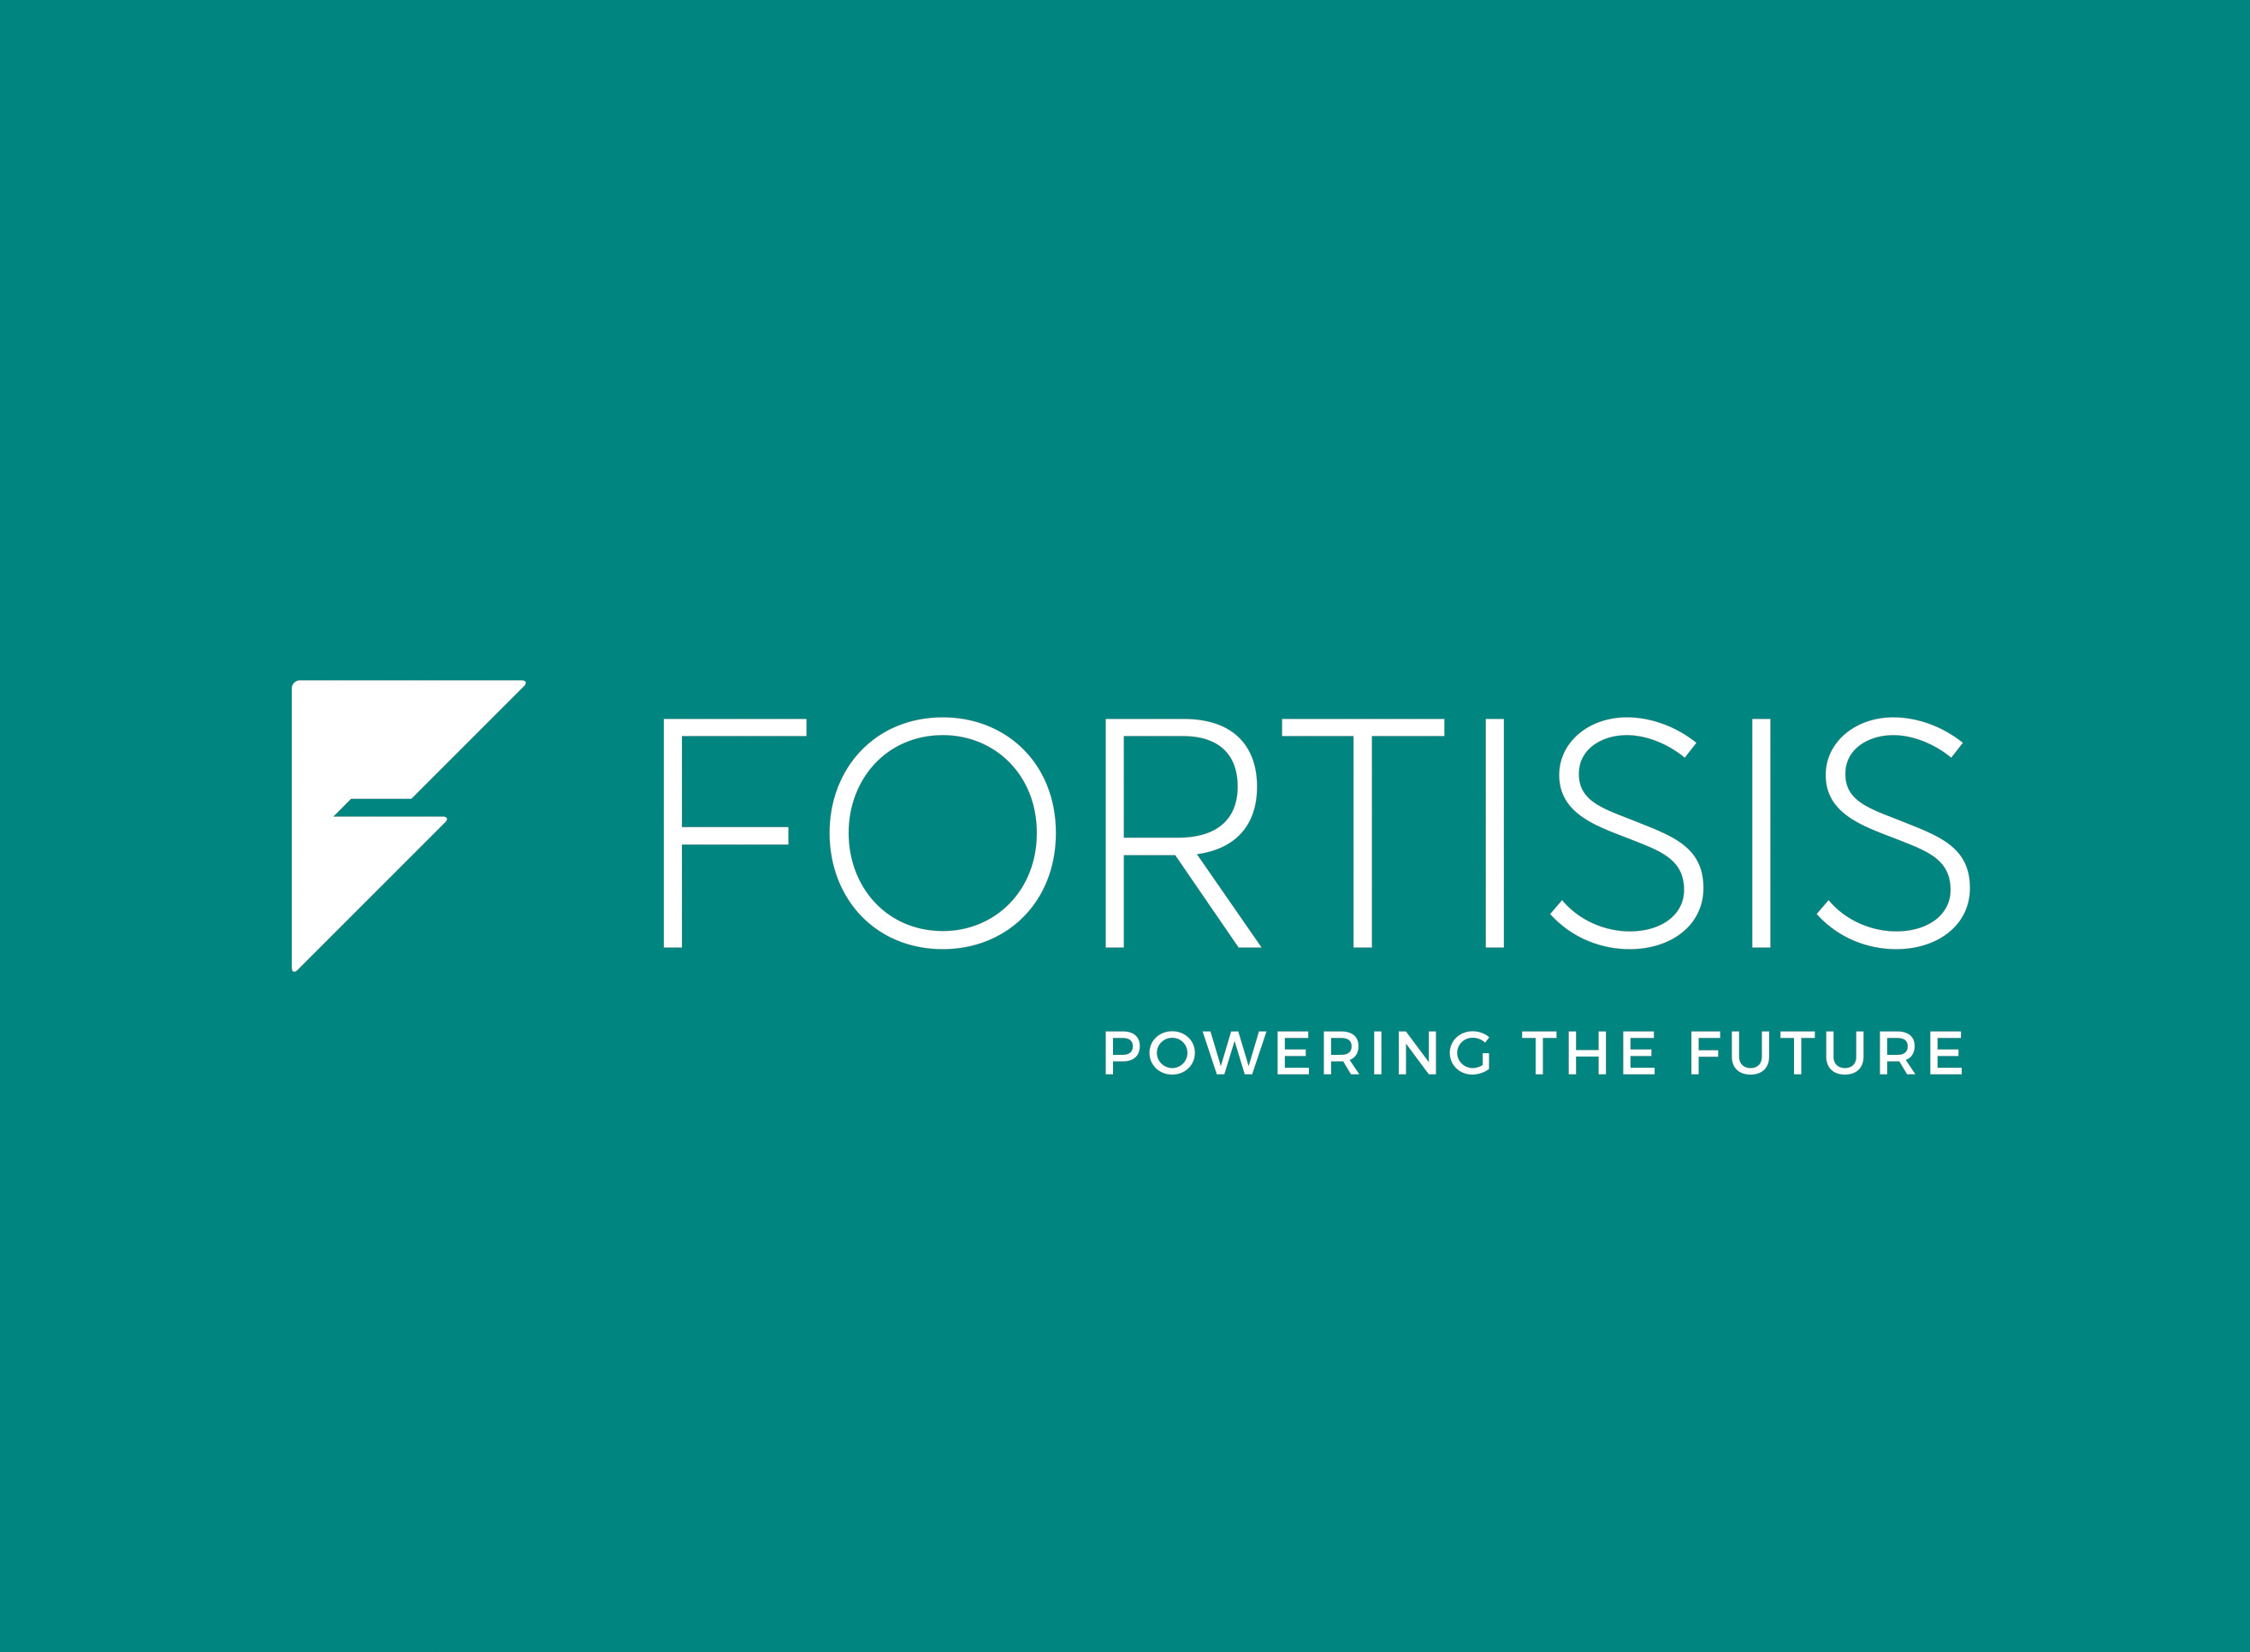 Fortisis